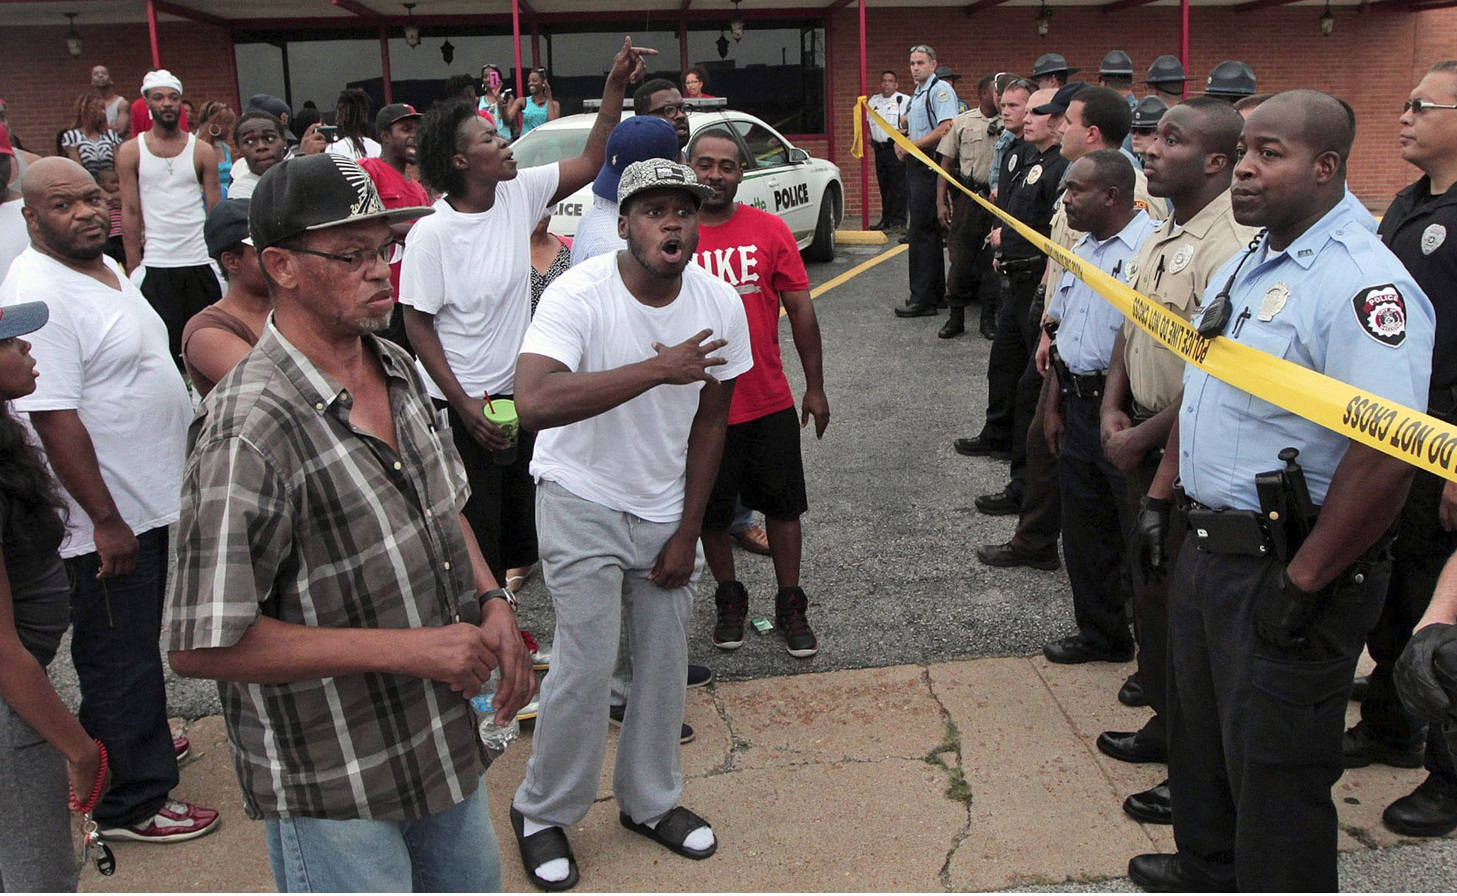 Ferguson police officers try to calm down a crowd near the scene where 18-year-old Michael Brown was fatally shot by police